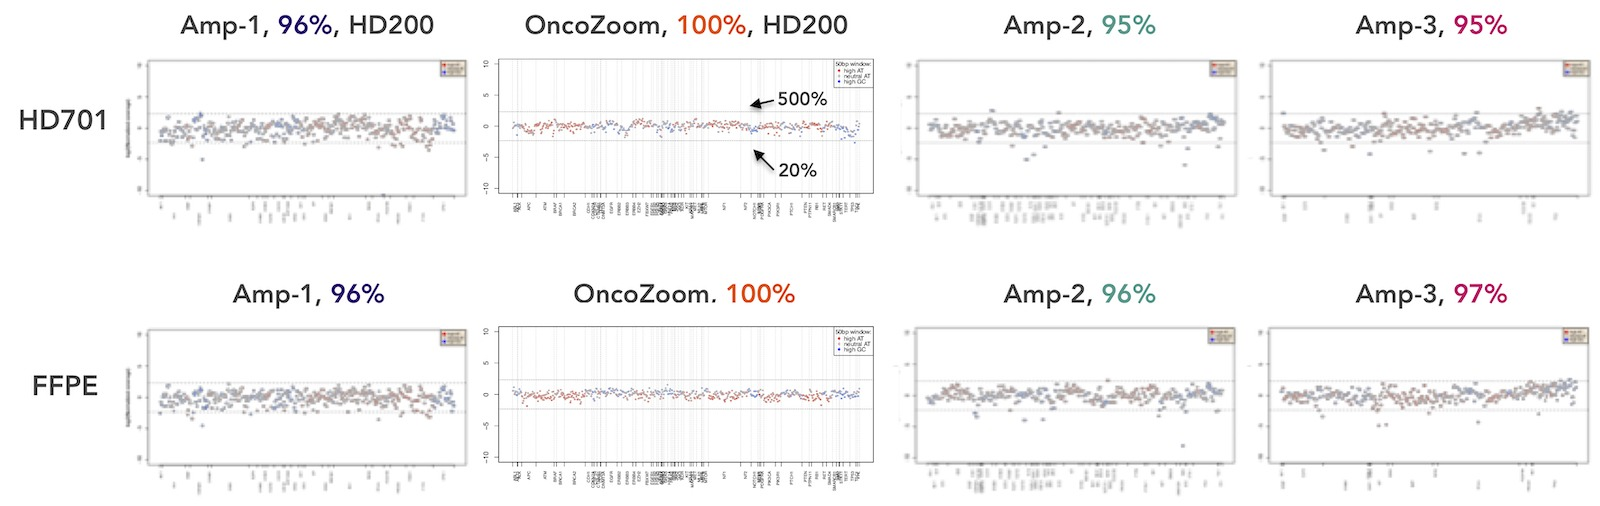 Tumor Profiling NGS Amplicon Sequencing Technology Comparison